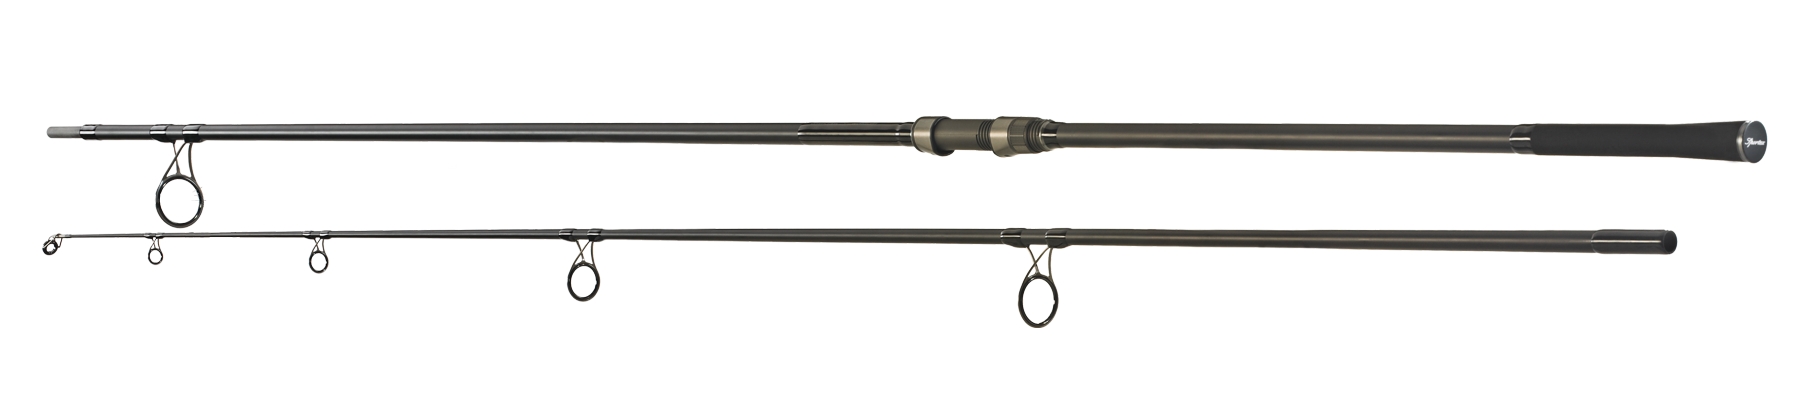 Удилище сподовое Sportex Competition NT Spod 13ft / 5lb